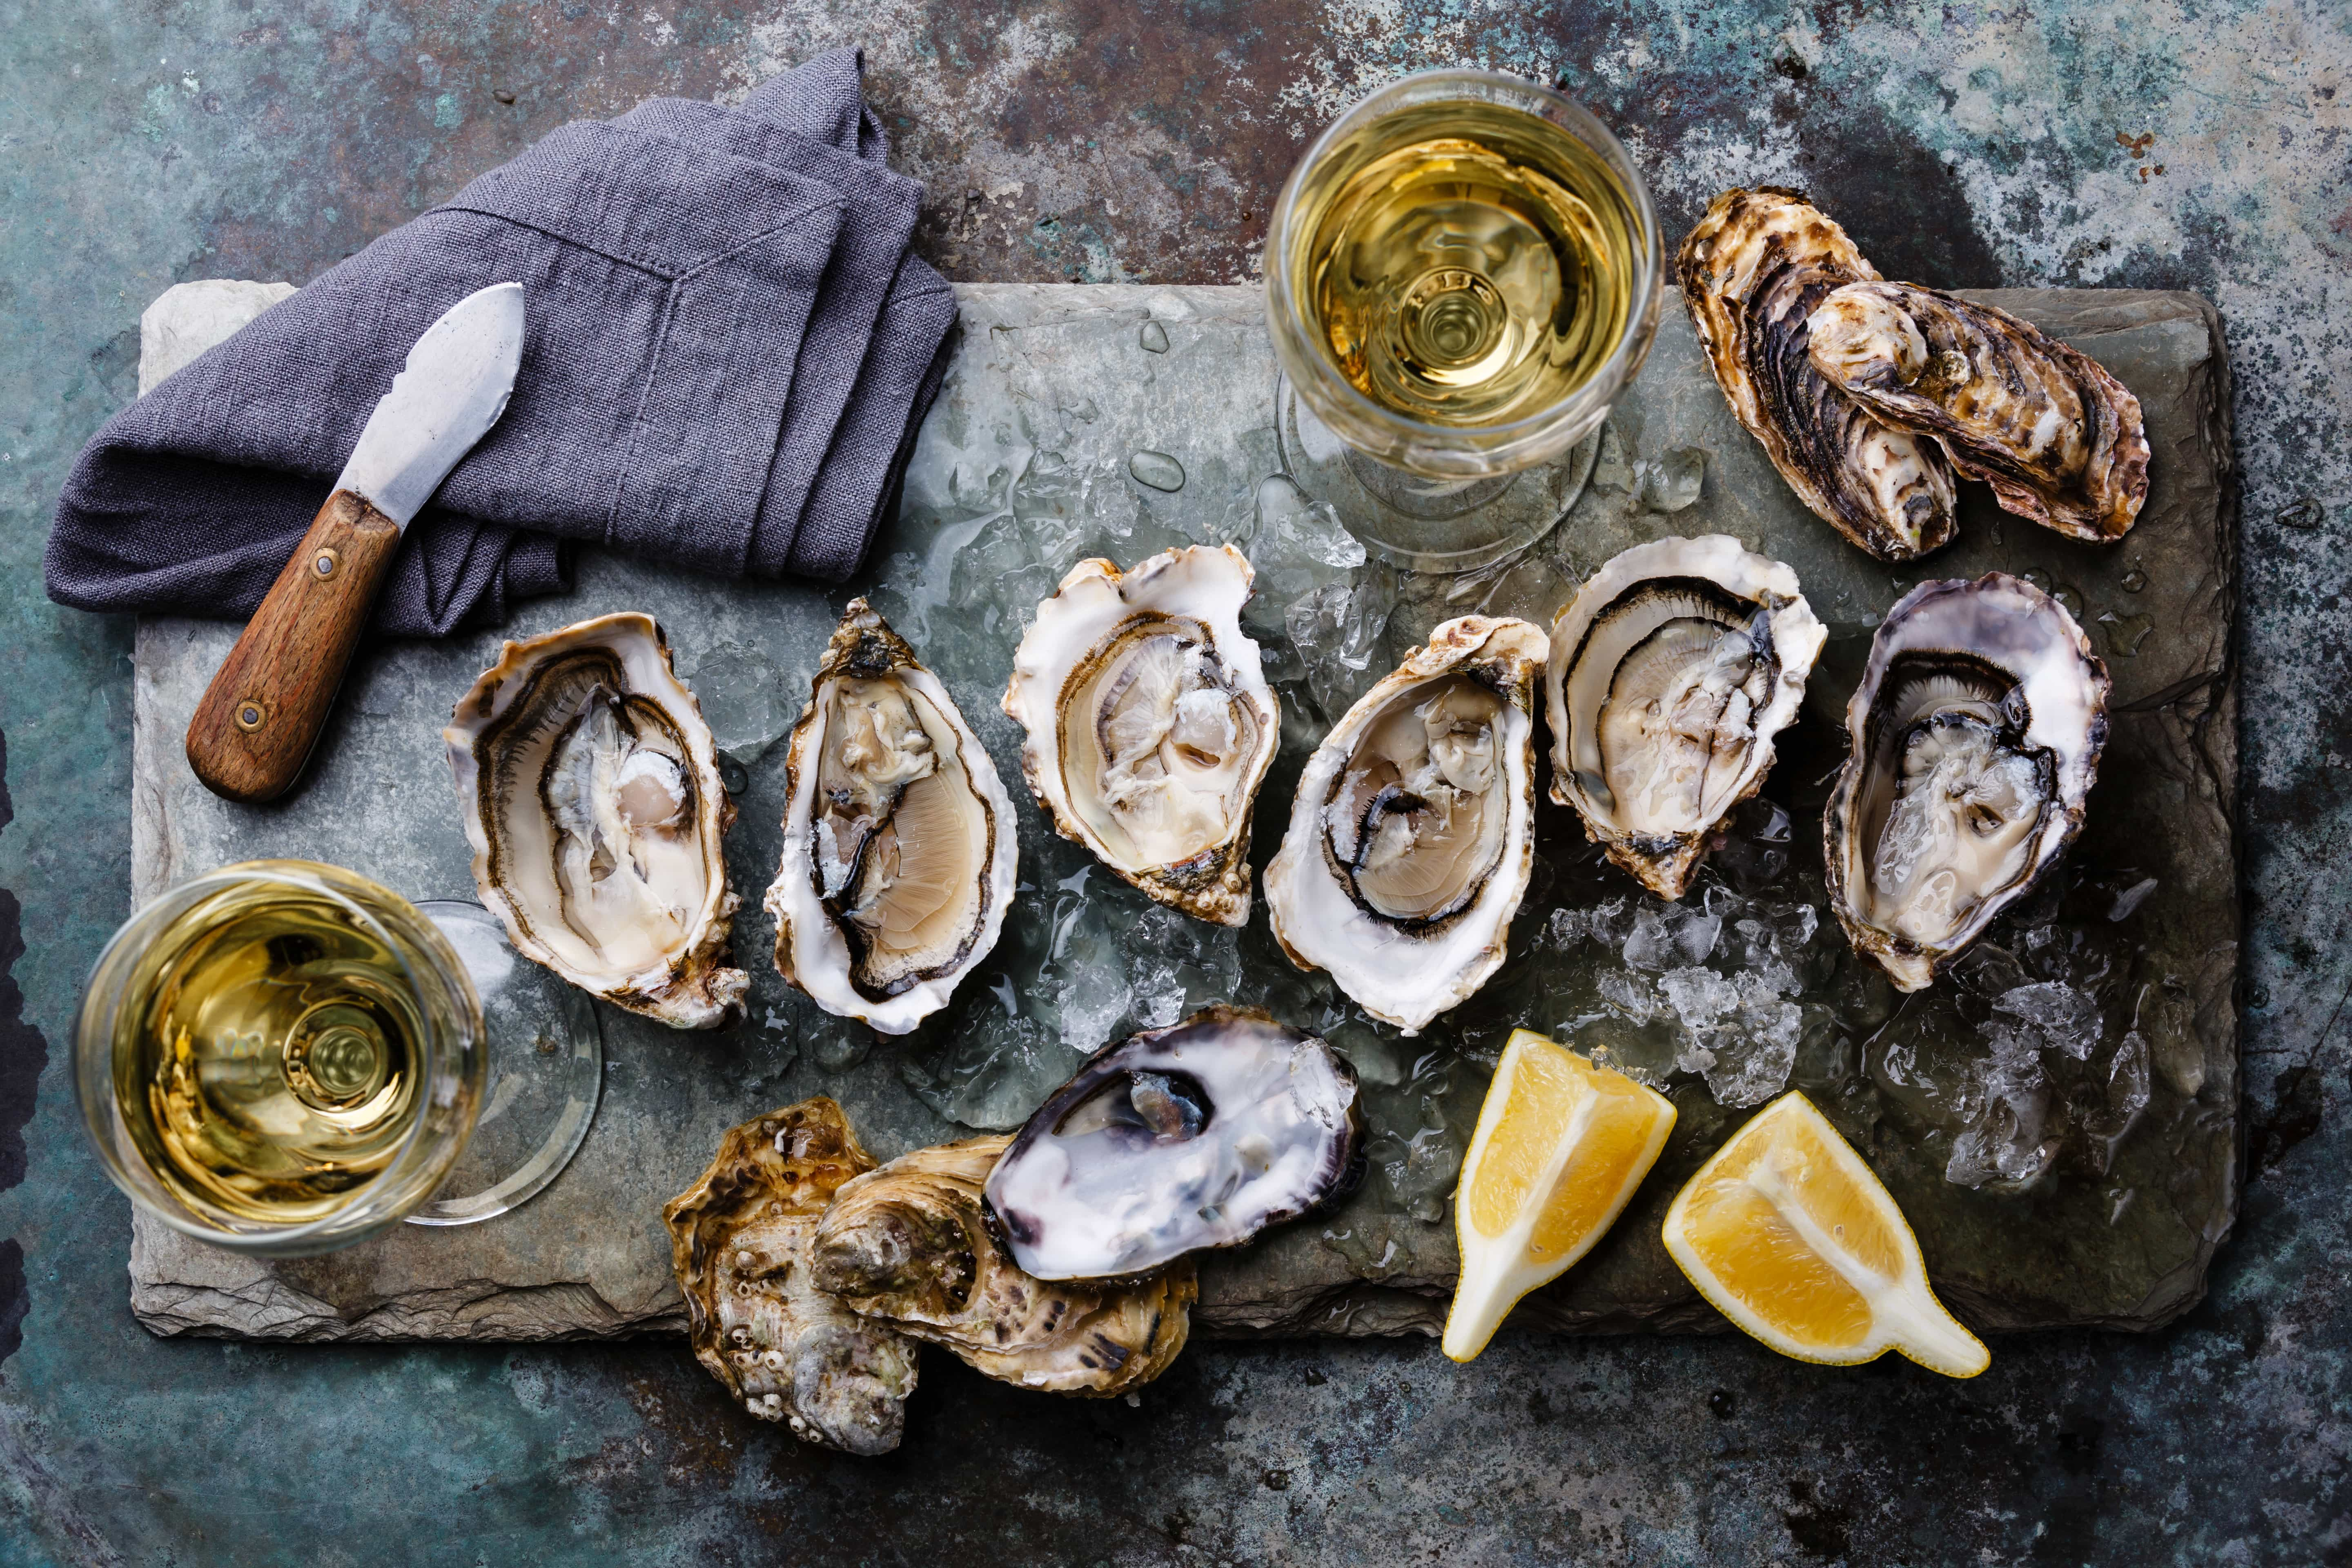 Oysters - magnesium rich foods